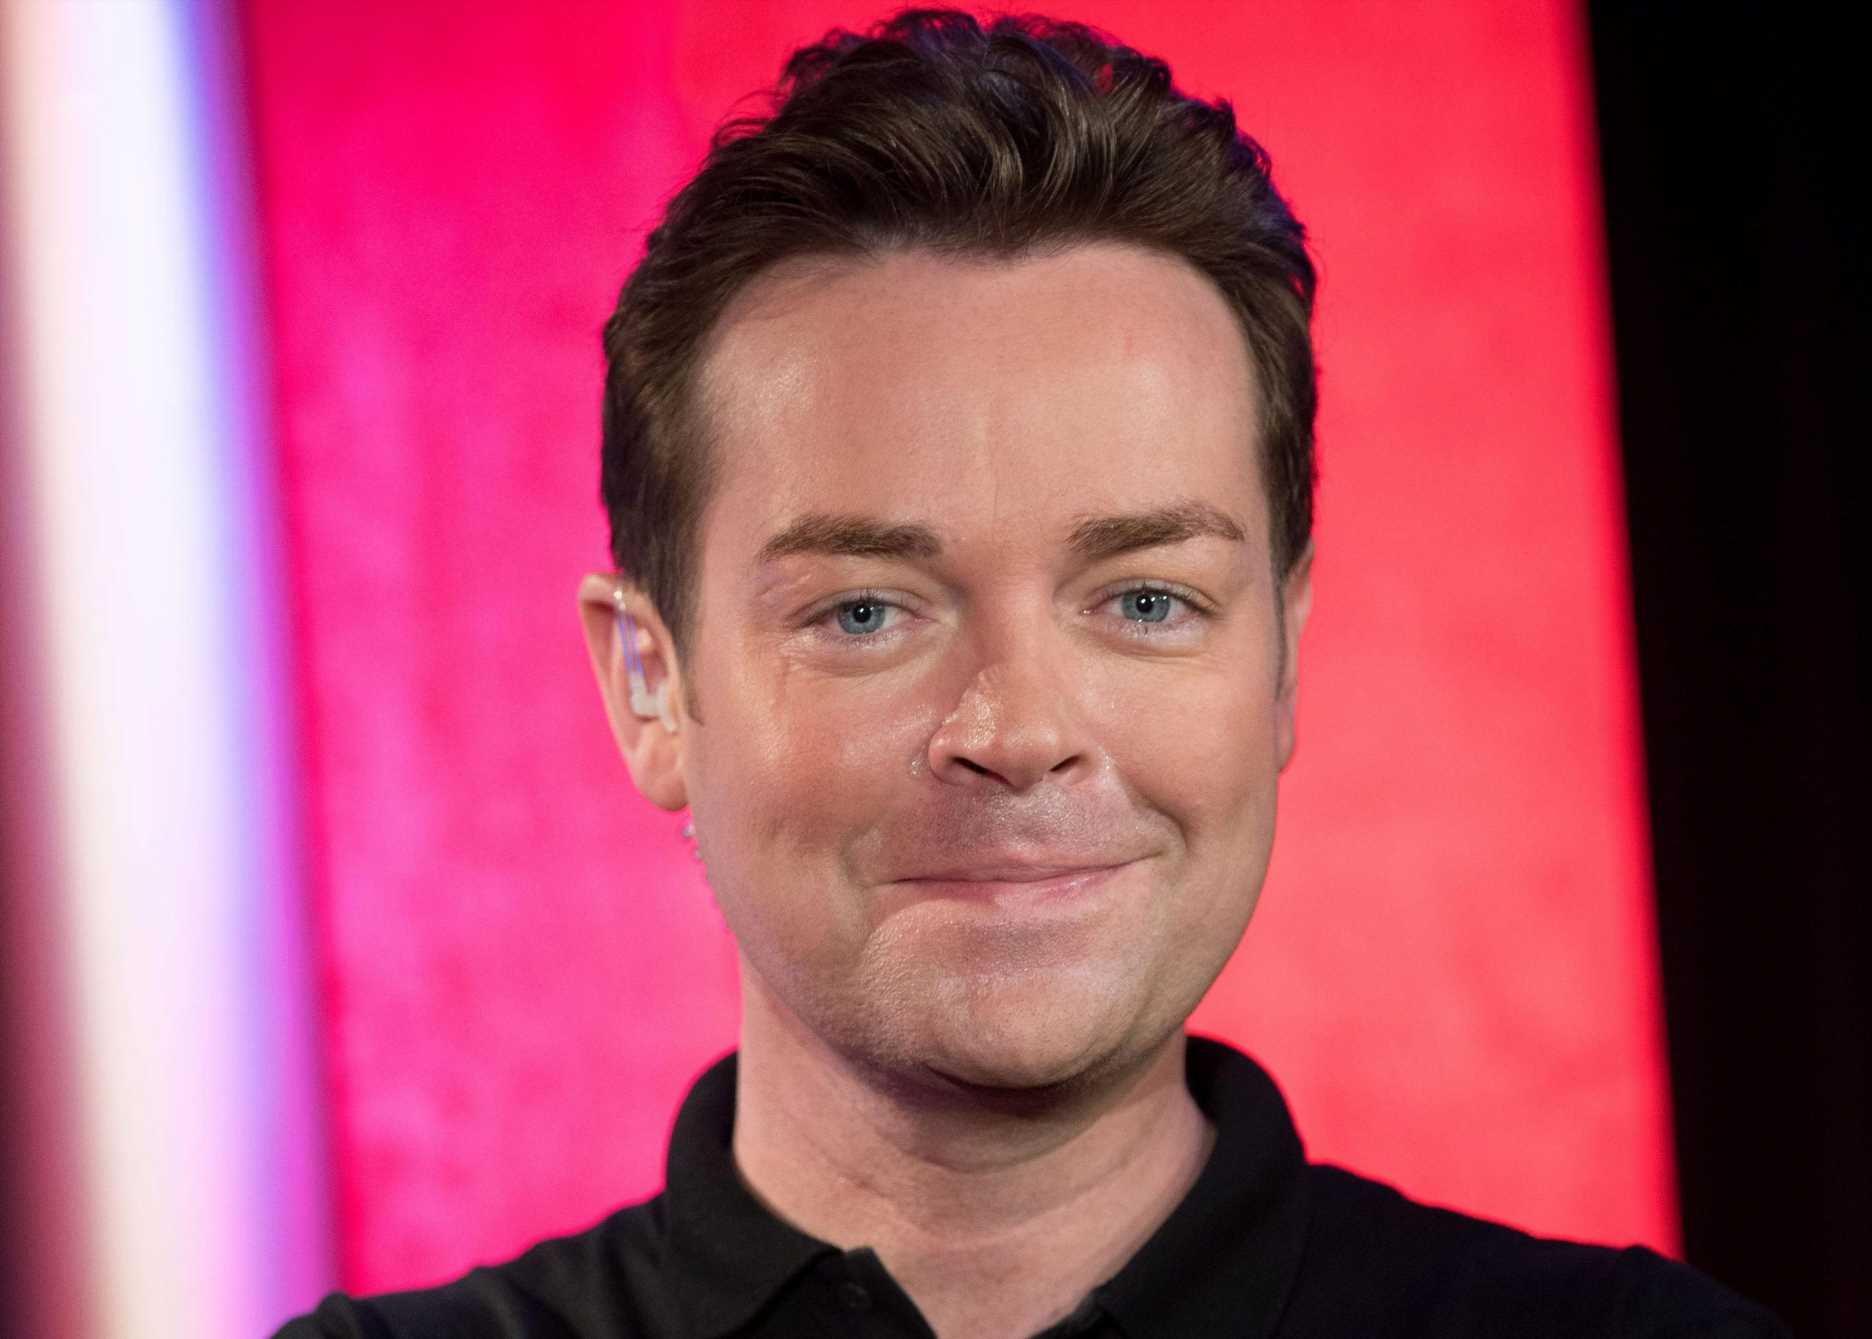 Does Stephen Mulhern have a wife, when did he date Strictly's Emma Barton and how old is the Britain's Got More Talent host?